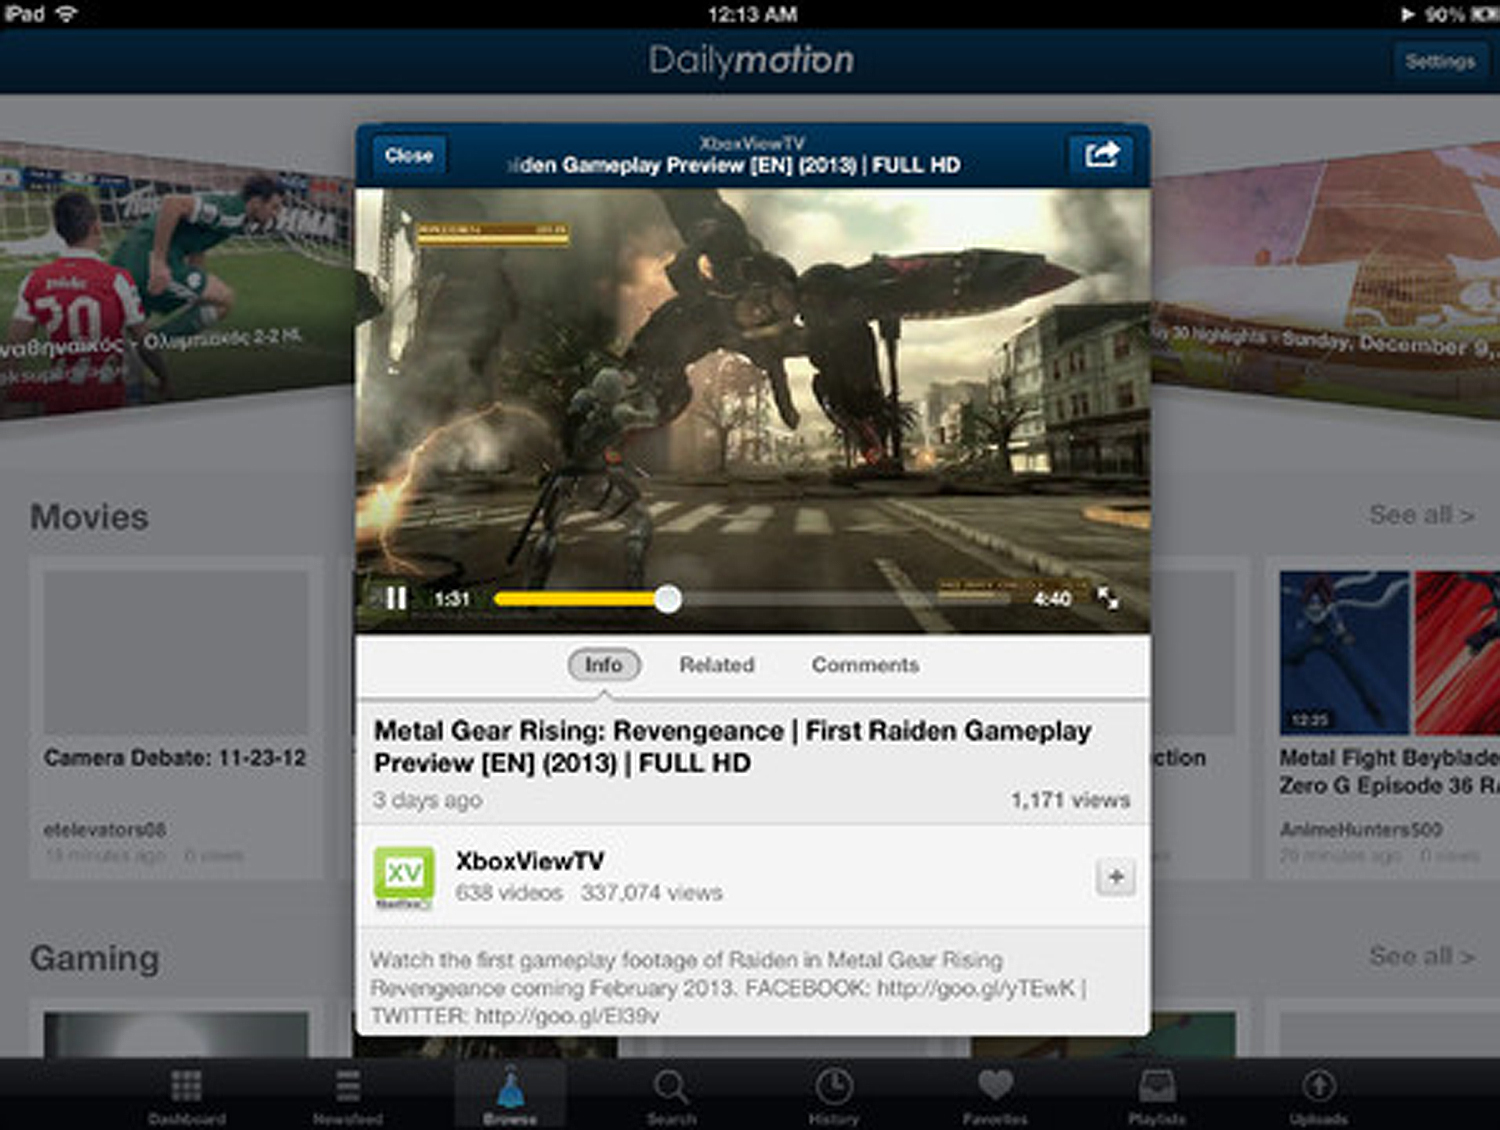 daily motion ios ipad Online video giant Dailymotion updates iOS app with a fresh UI and better playlist organisation